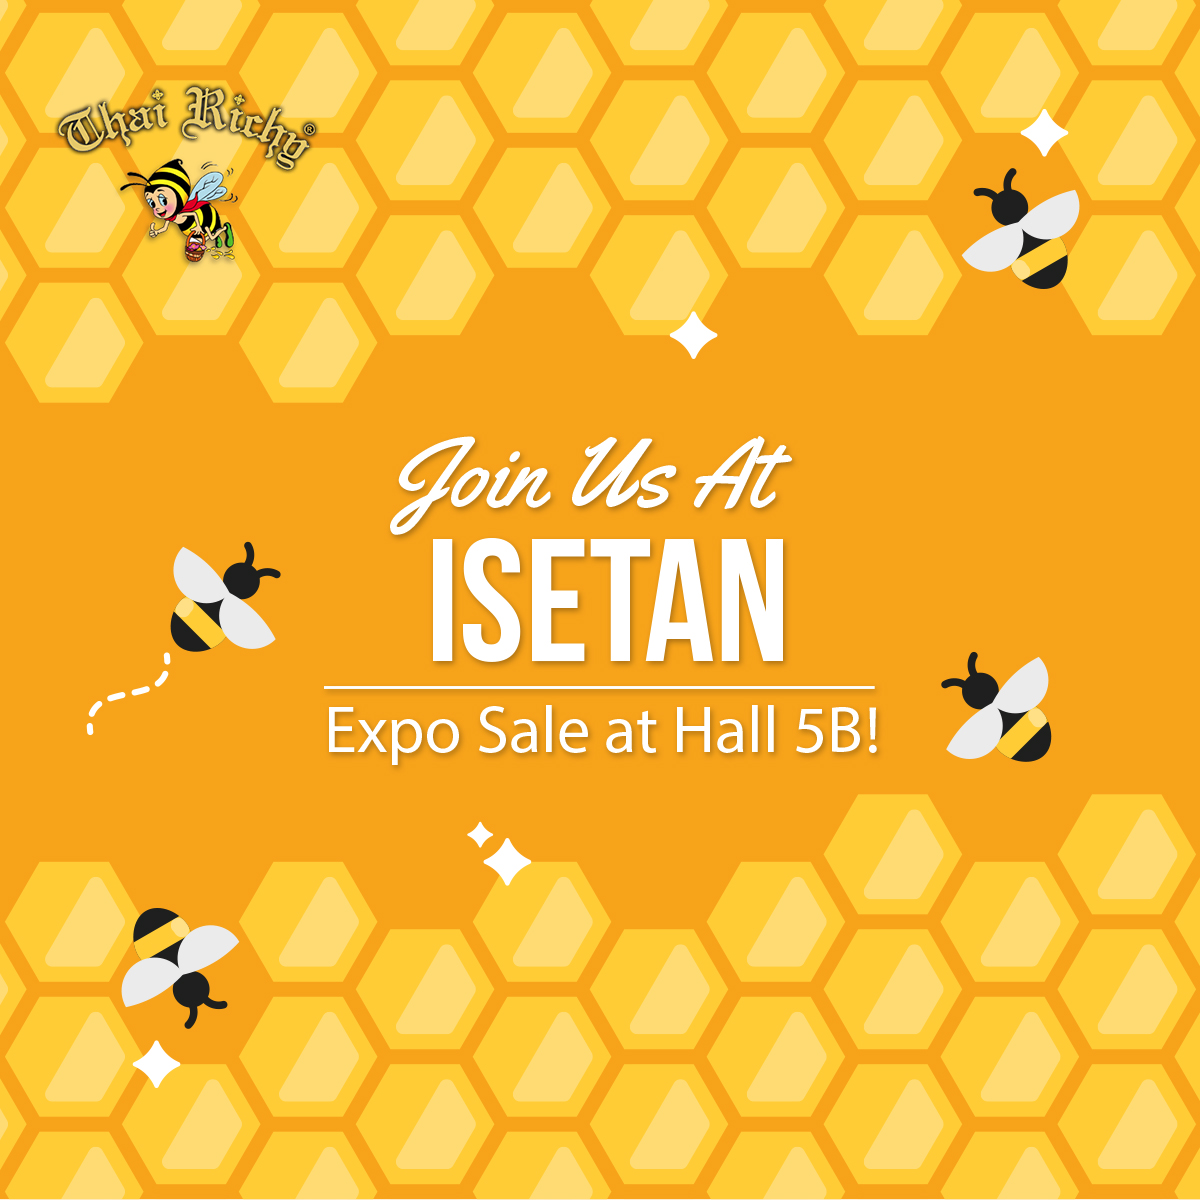 Thai Richy Honey Isetan Expo Sale (Sampling Activity Available)